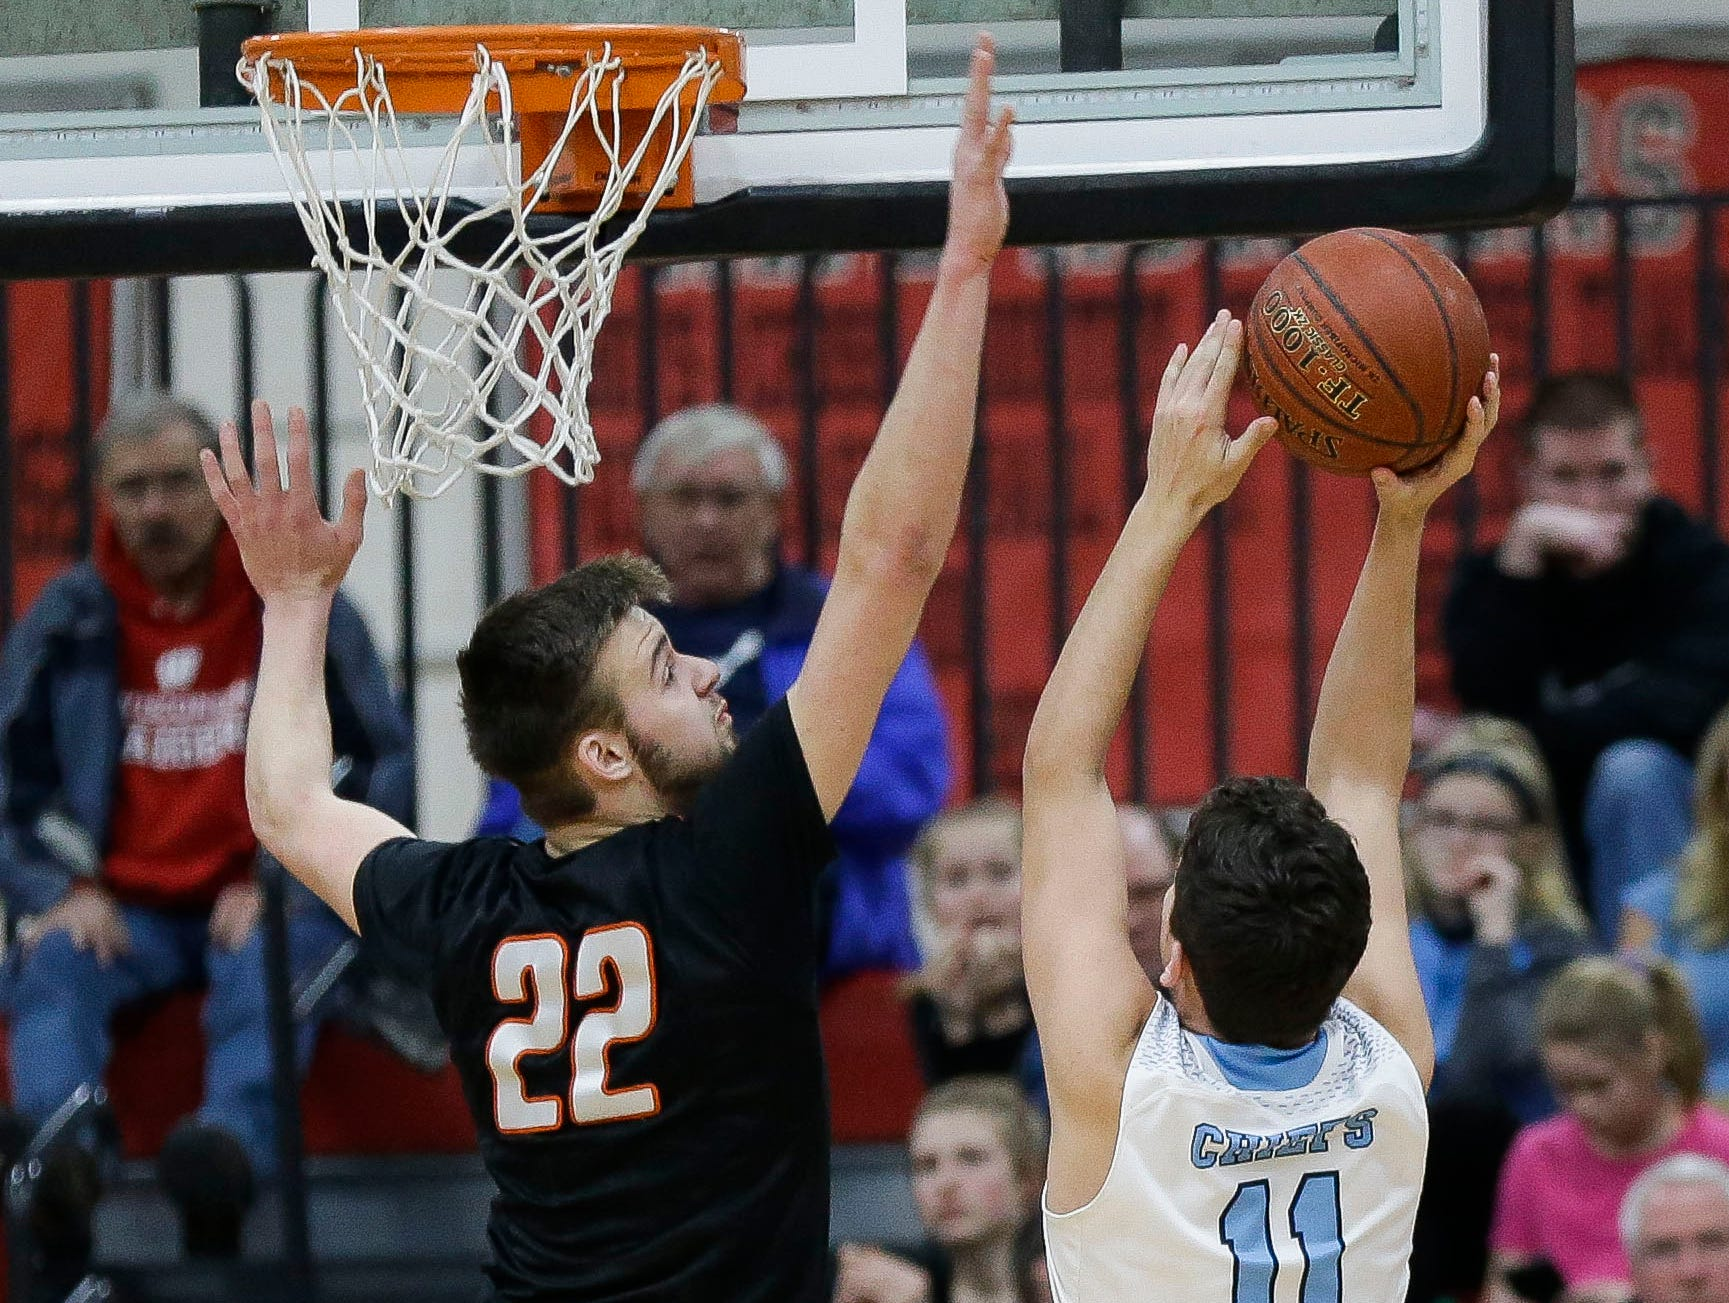 Stratford's Vaughn Breit (22) blocks the shot of Wisconsin Dells' Riley Eck (11) in a Division 3 sectional semifinal on Thursday, March 7, 2019, at Stevens Point Area High School in Stevens Point, Wis. Tork Mason/USA TODAY NETWORK-Wisconsin